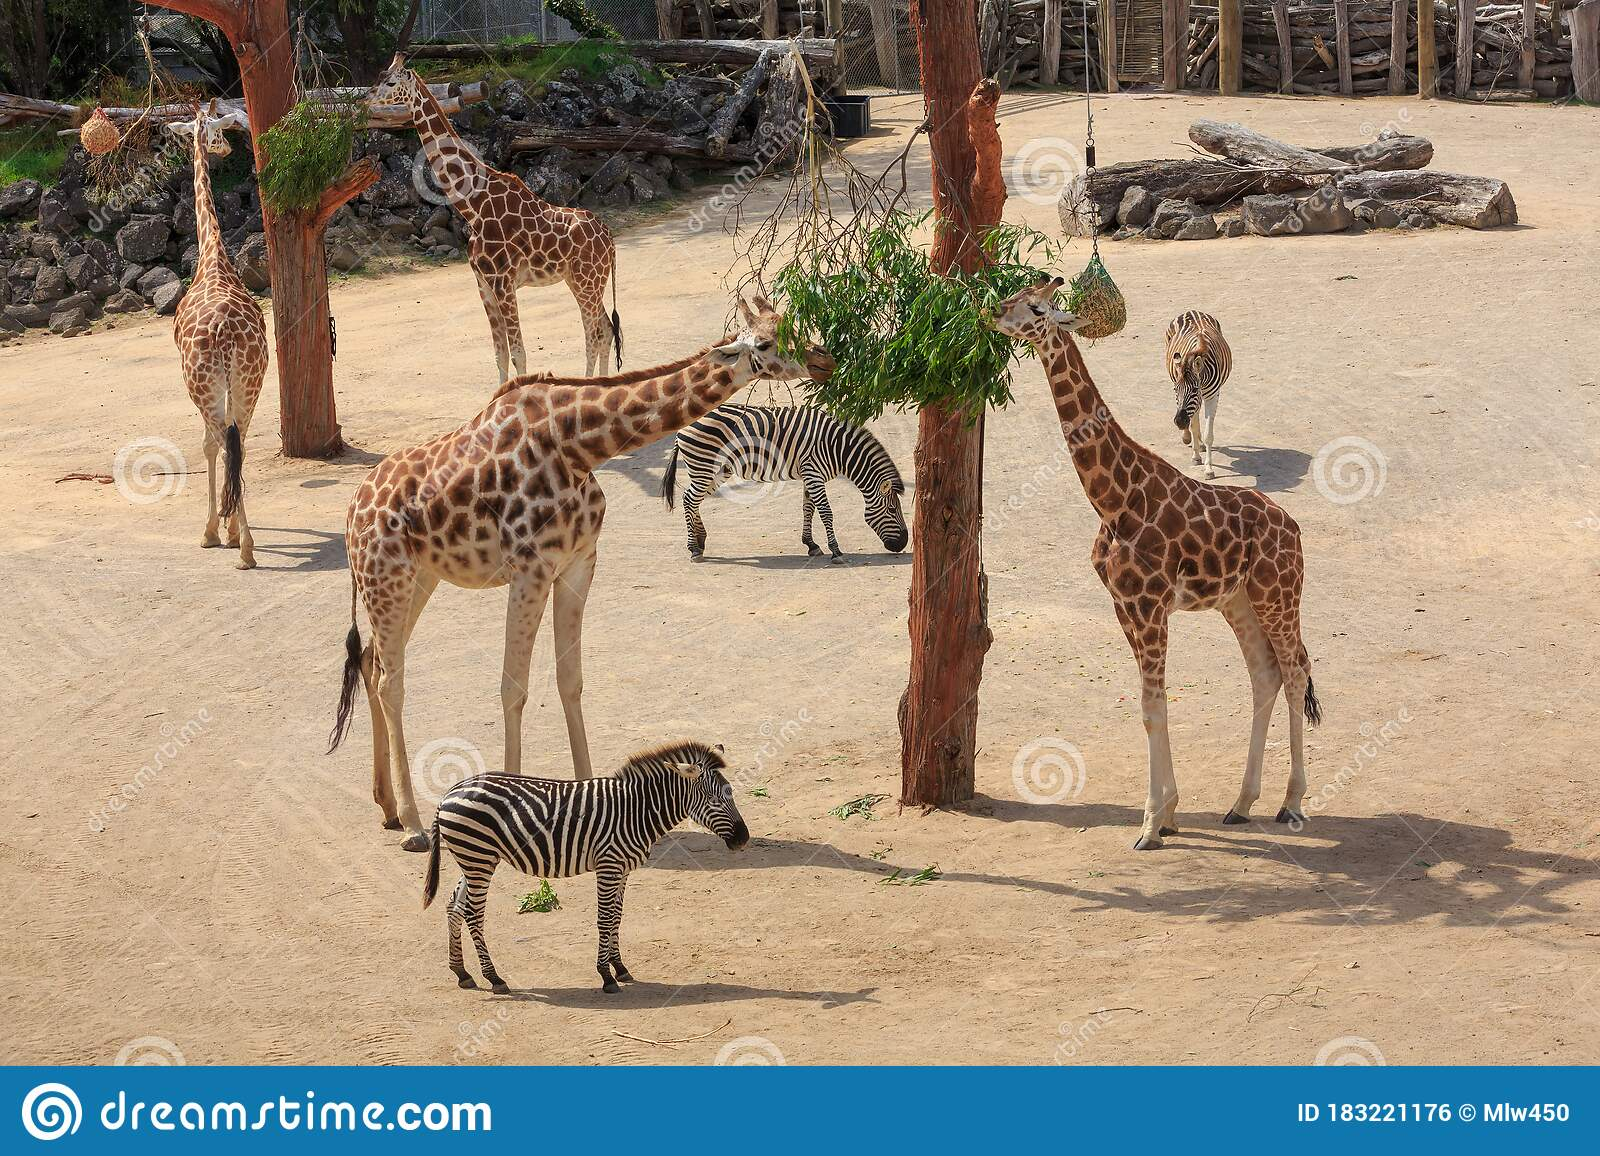 Giraffes And Zebras Living Together At A Zoo Stock Photo